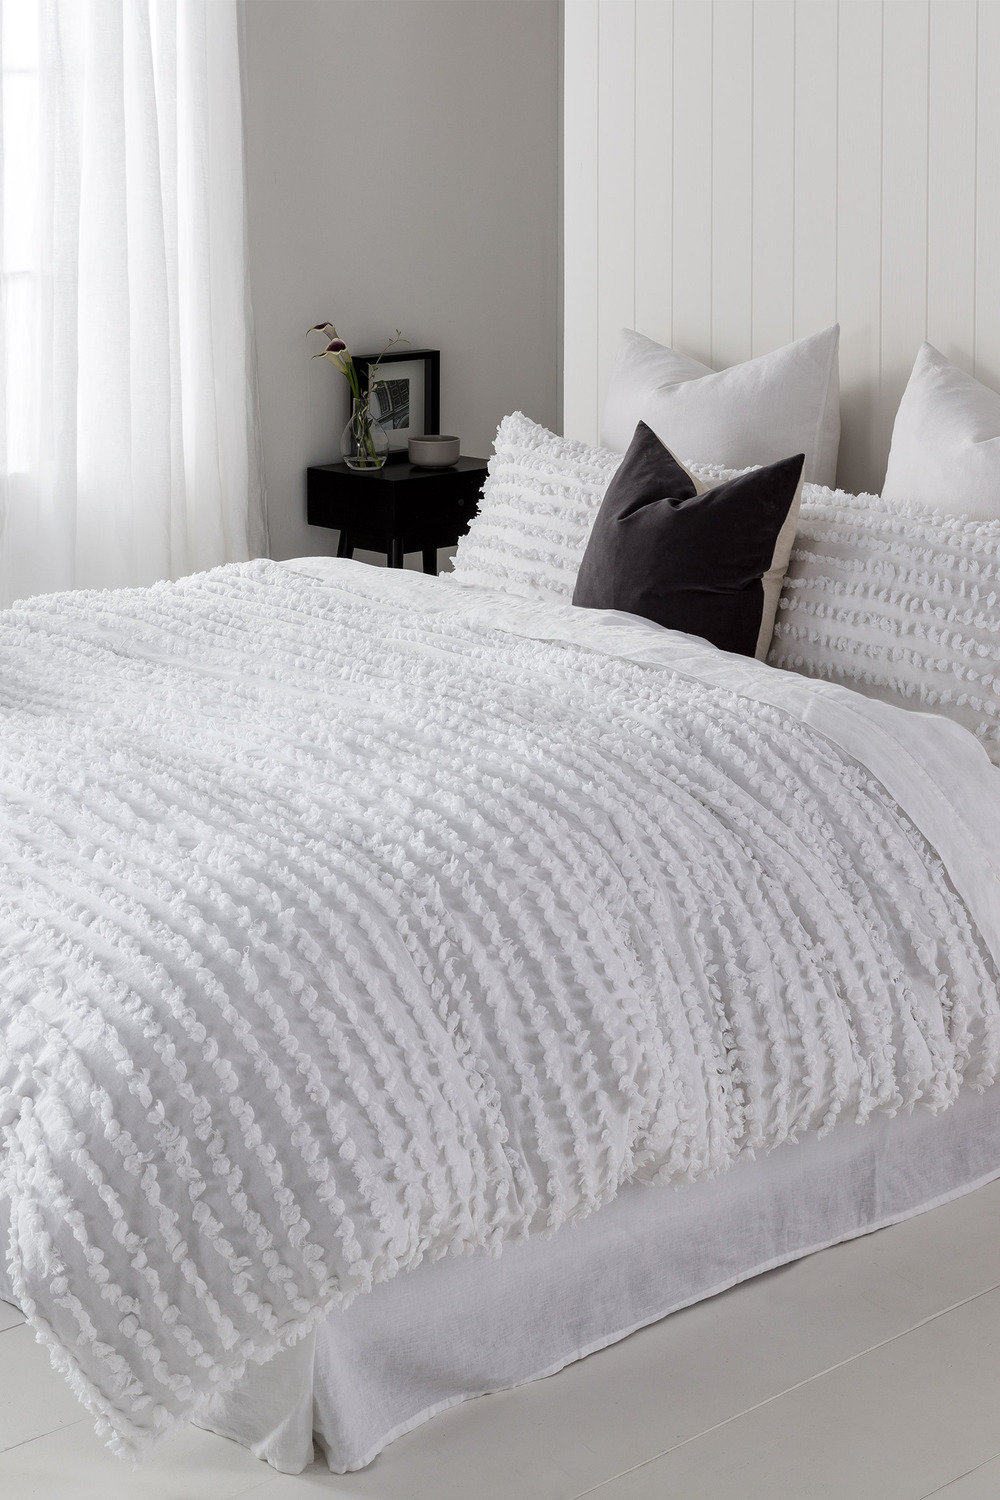 images textured bedroom comforters bedding cover chevron grey white best pinterest covers and on duvet